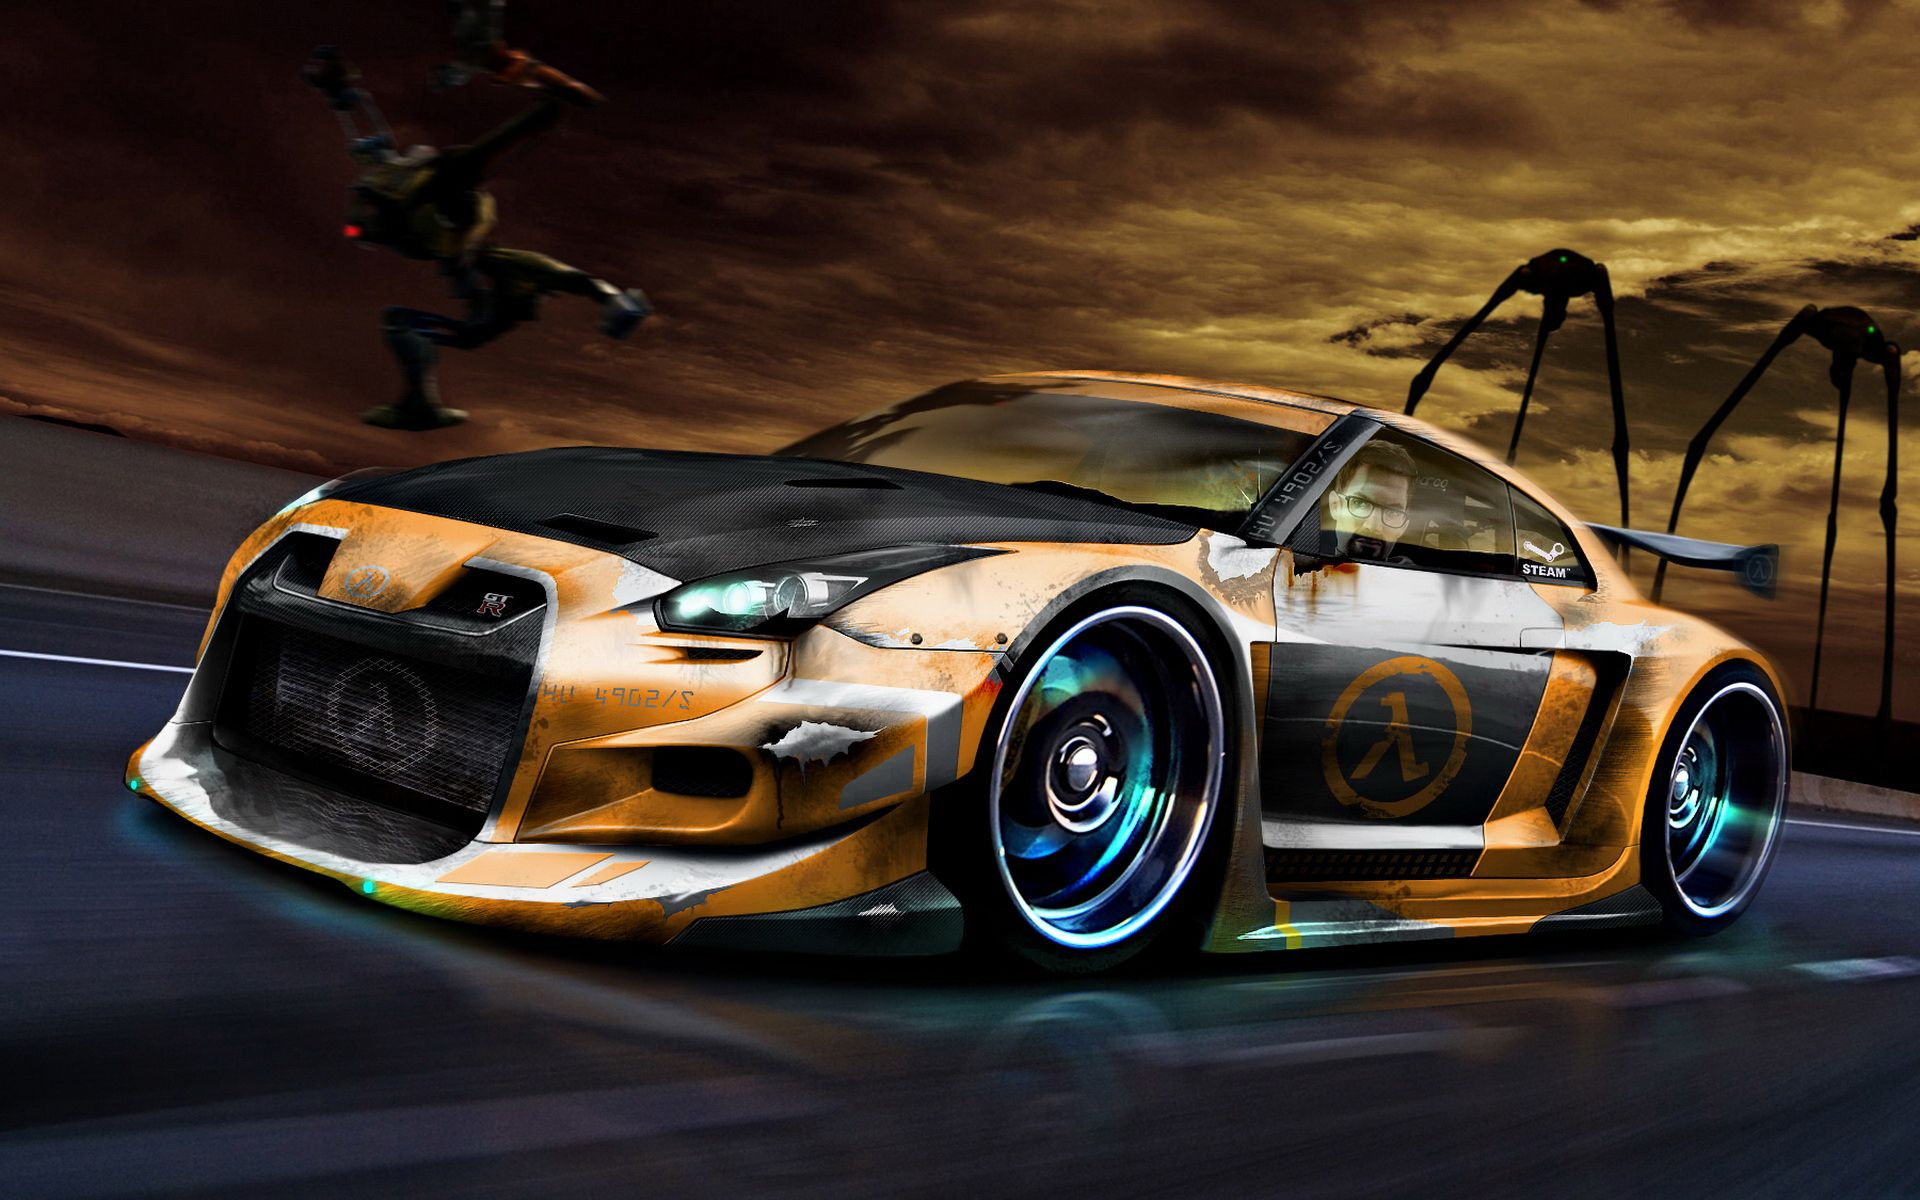 street racing car pics | cool sports car wallpaper auto desktop